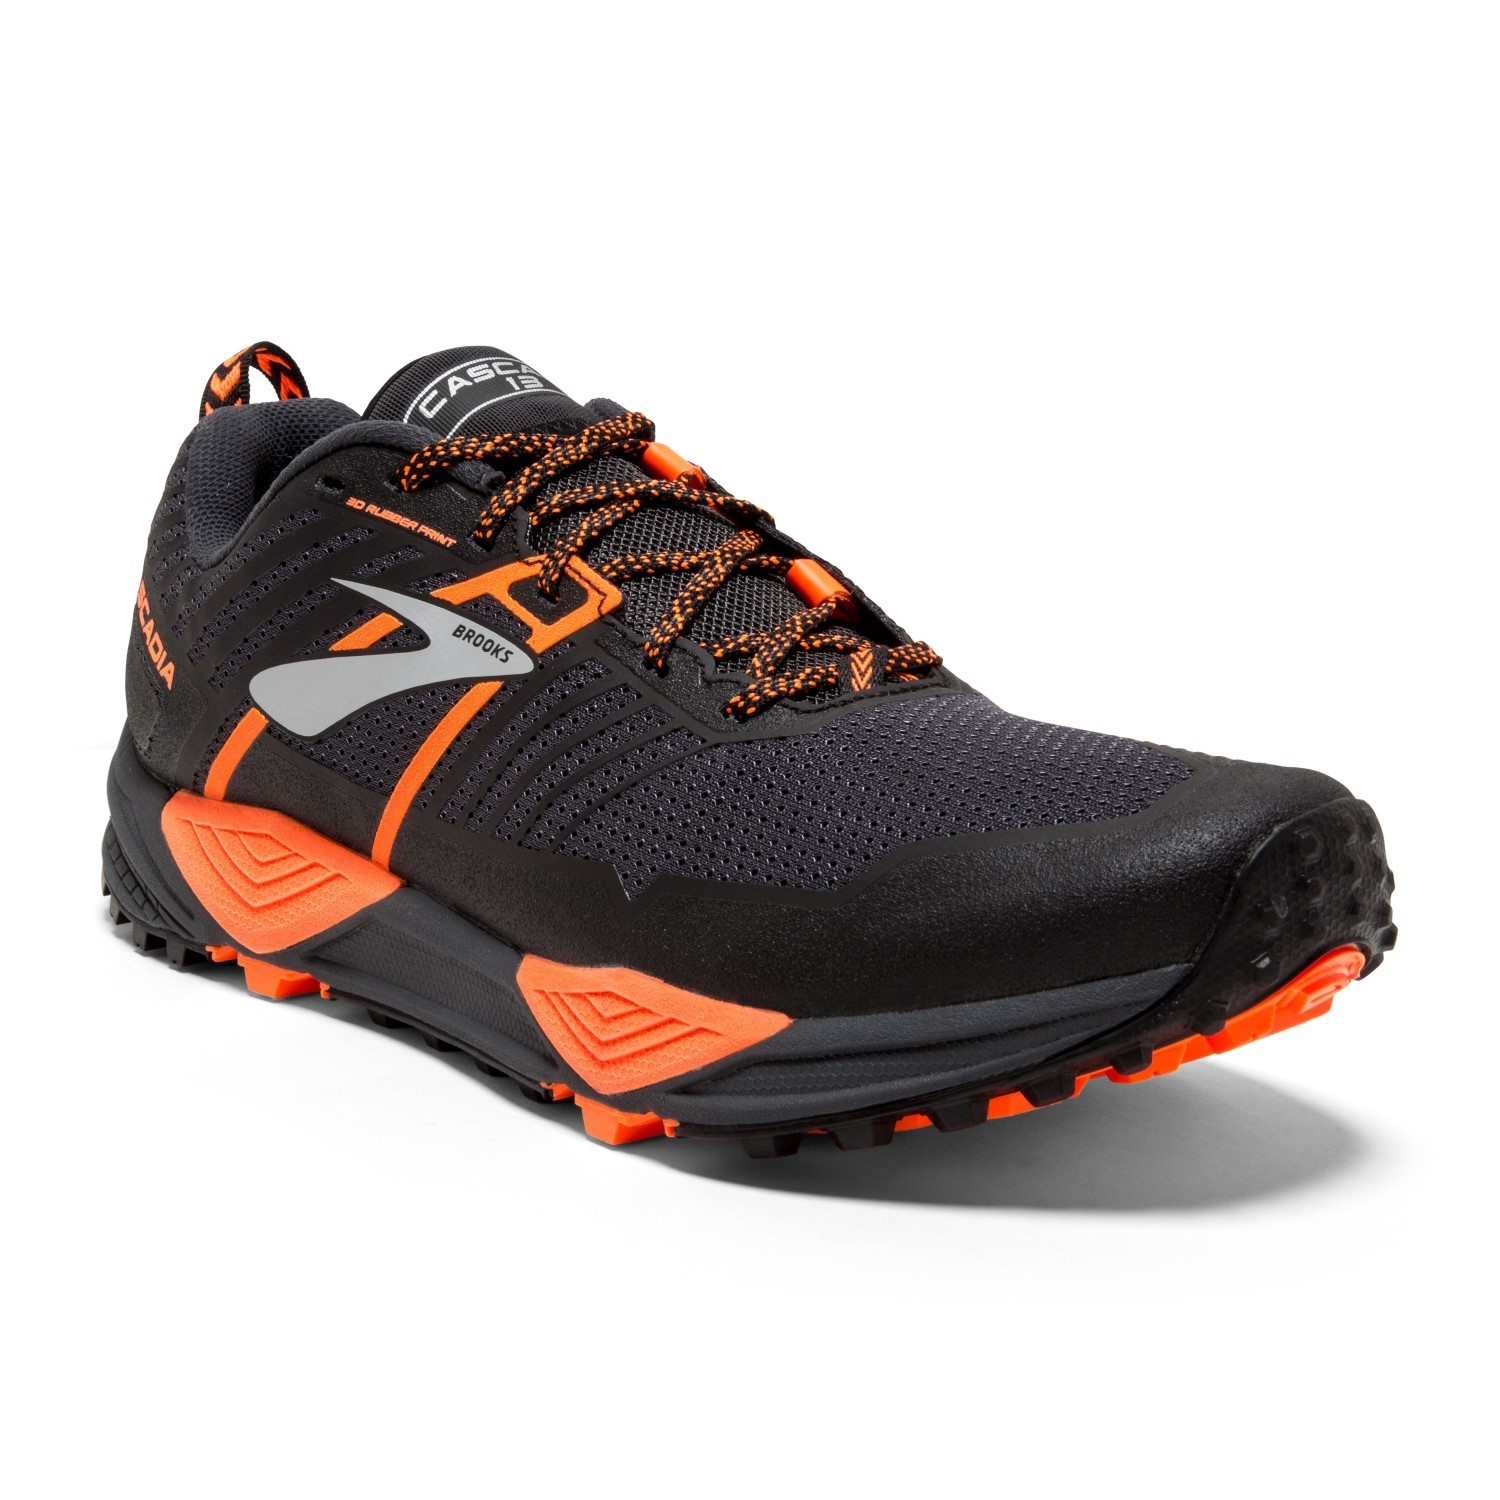 198c0b148cc Brooks Cascadia 13 - Mens Trail Running Shoes - Grey Black Orange ...